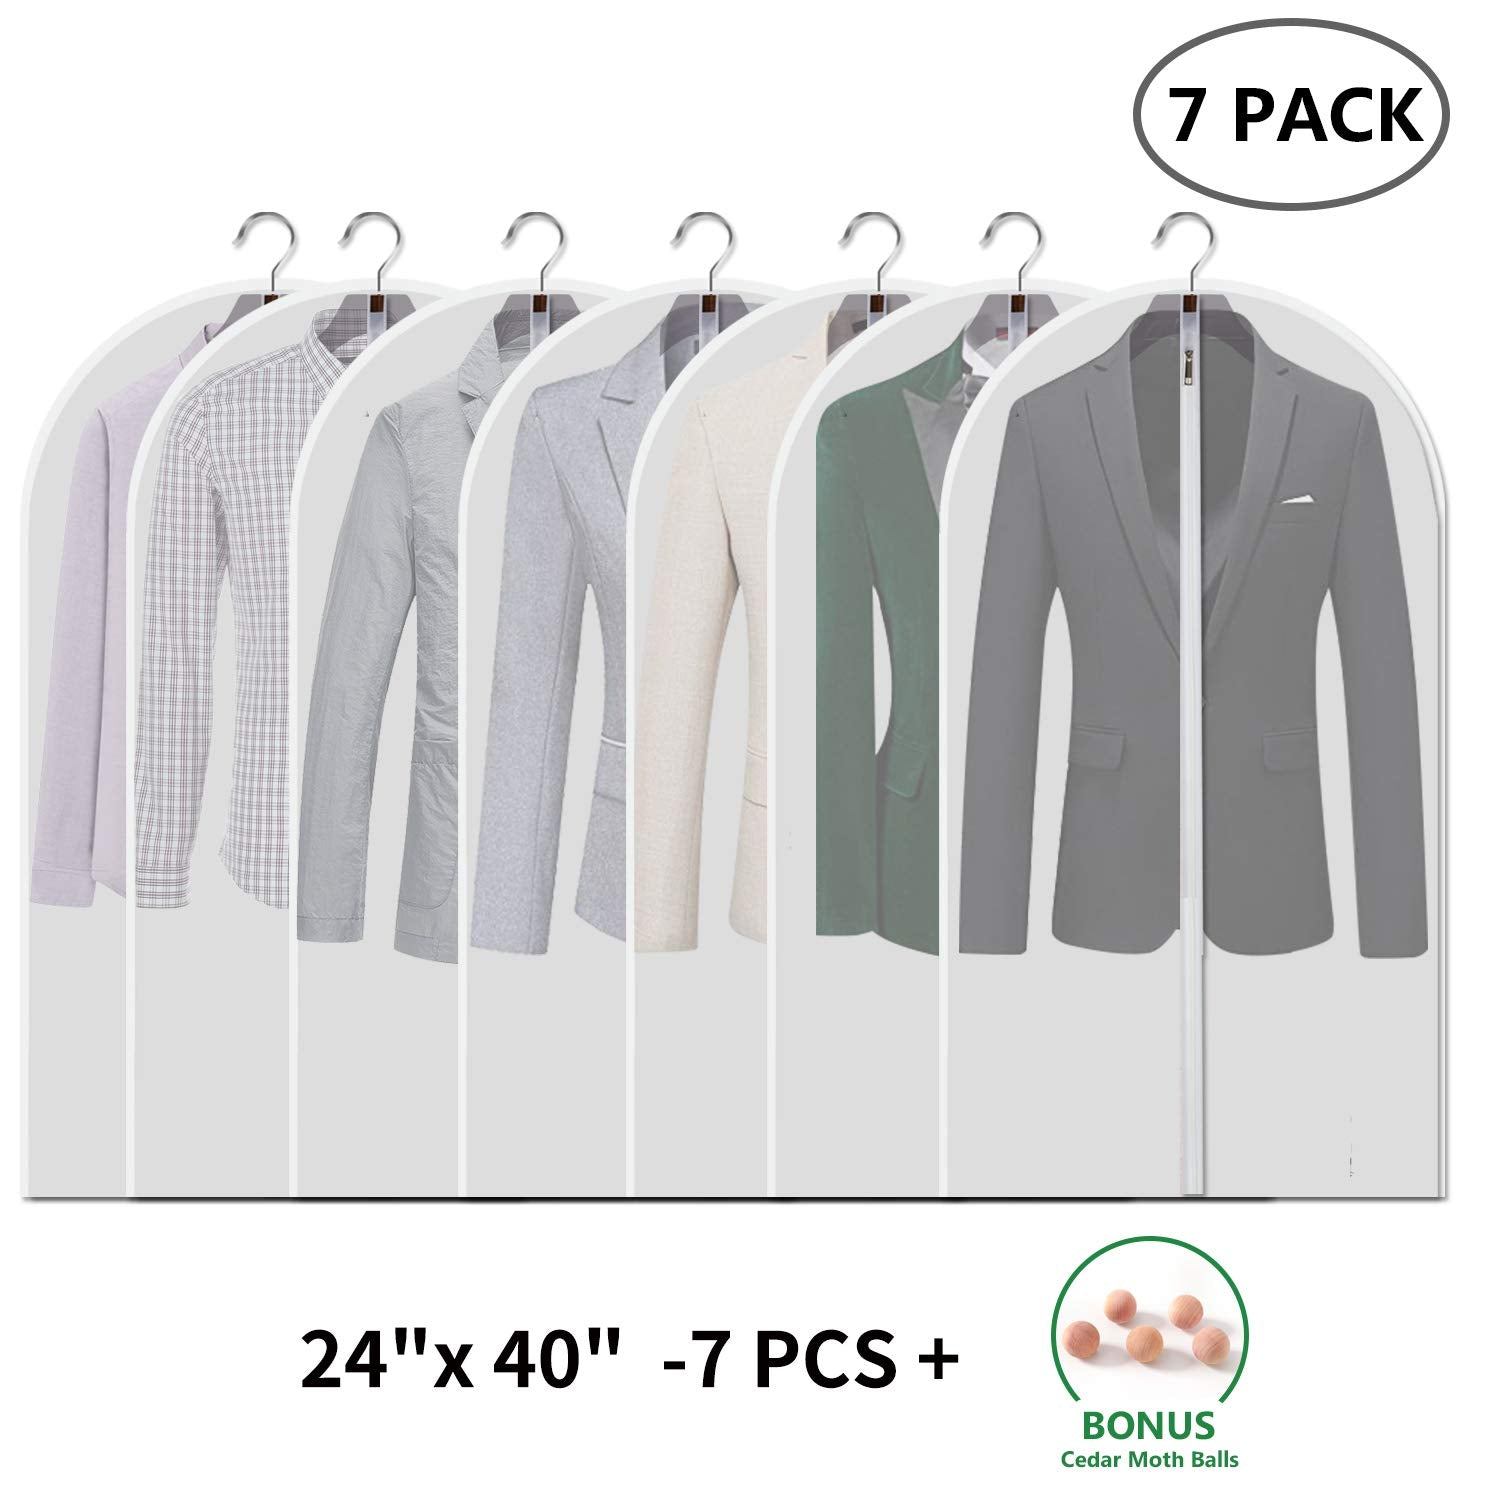 Vosigreen Dust Proof Clear Garment Bags 7 Piece Set - 40 Inch Translucent Suit Bags with Full-Length Zipper for Closet Clothes Storage and Travel (2019 New Design). Bonus: 5 Natural Cedar Ball